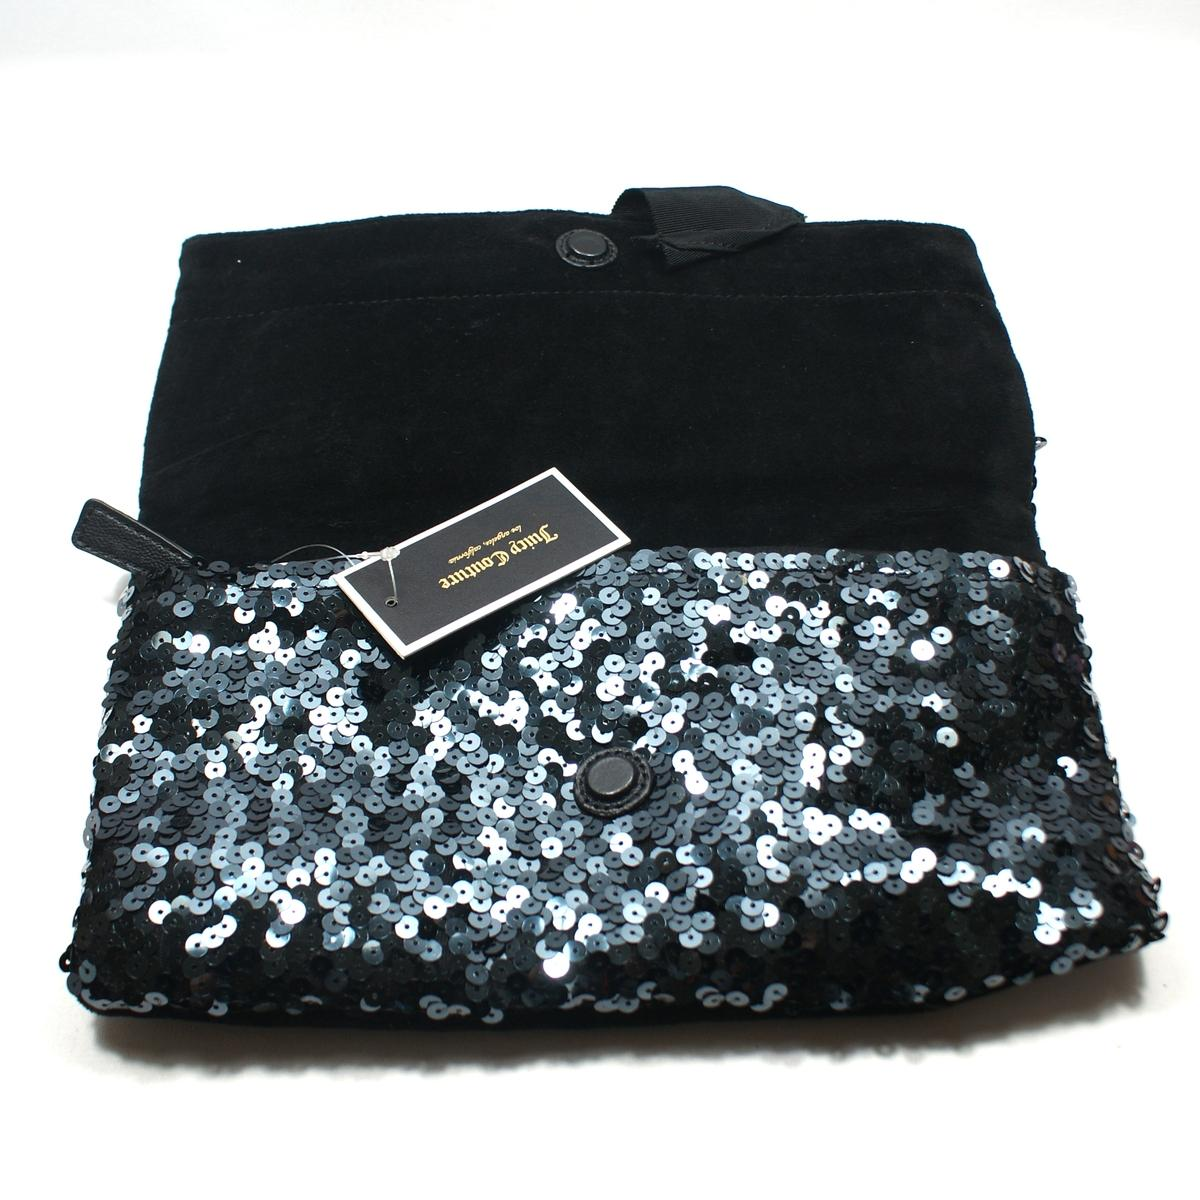 Juicy Couture Black Sequin Large Clutch Bag #YHRUO011